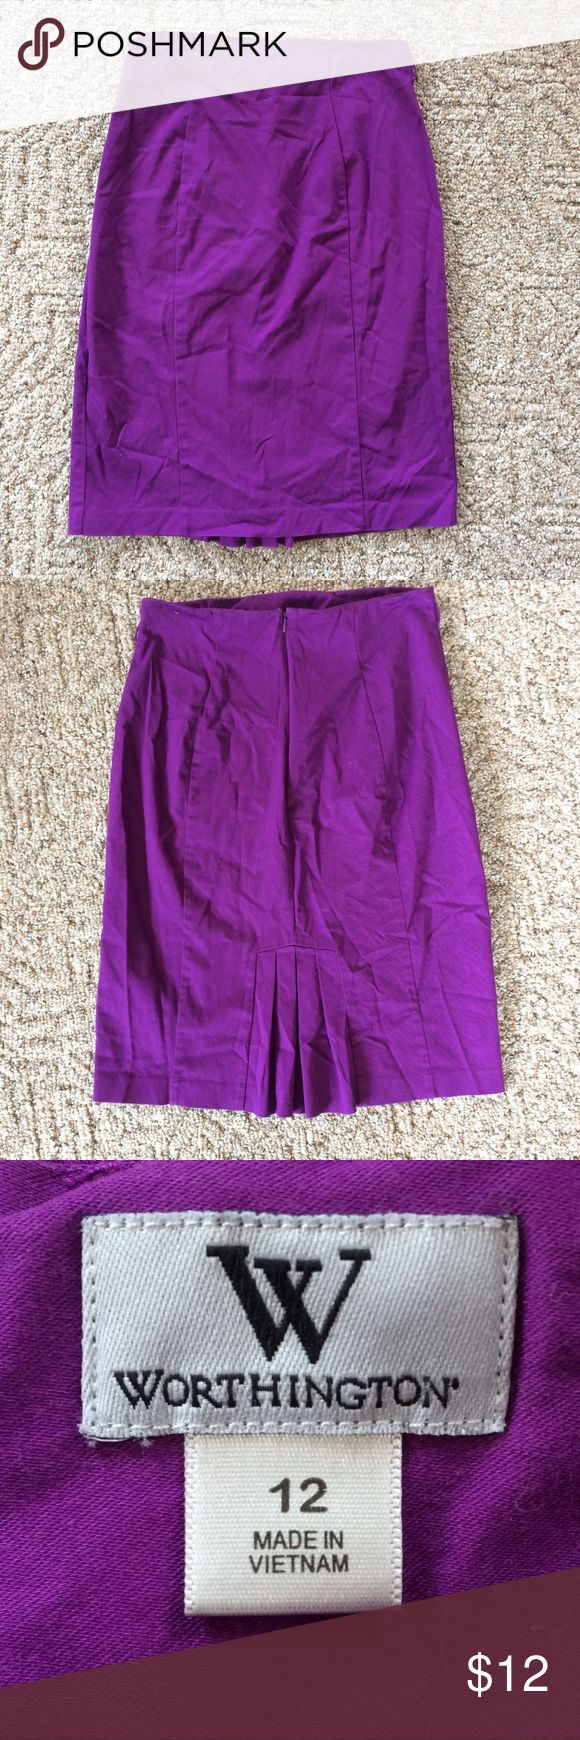 💙10K Sale💙Purple Pencil Skirt Purple pencil skirt with belt loops and back zipper/pleats from Worthington. Size 12. 🚫SMOKE FREE HOME🚫☄️Offers welcome and encouraged!☄️ Worthington Skirts Pencil